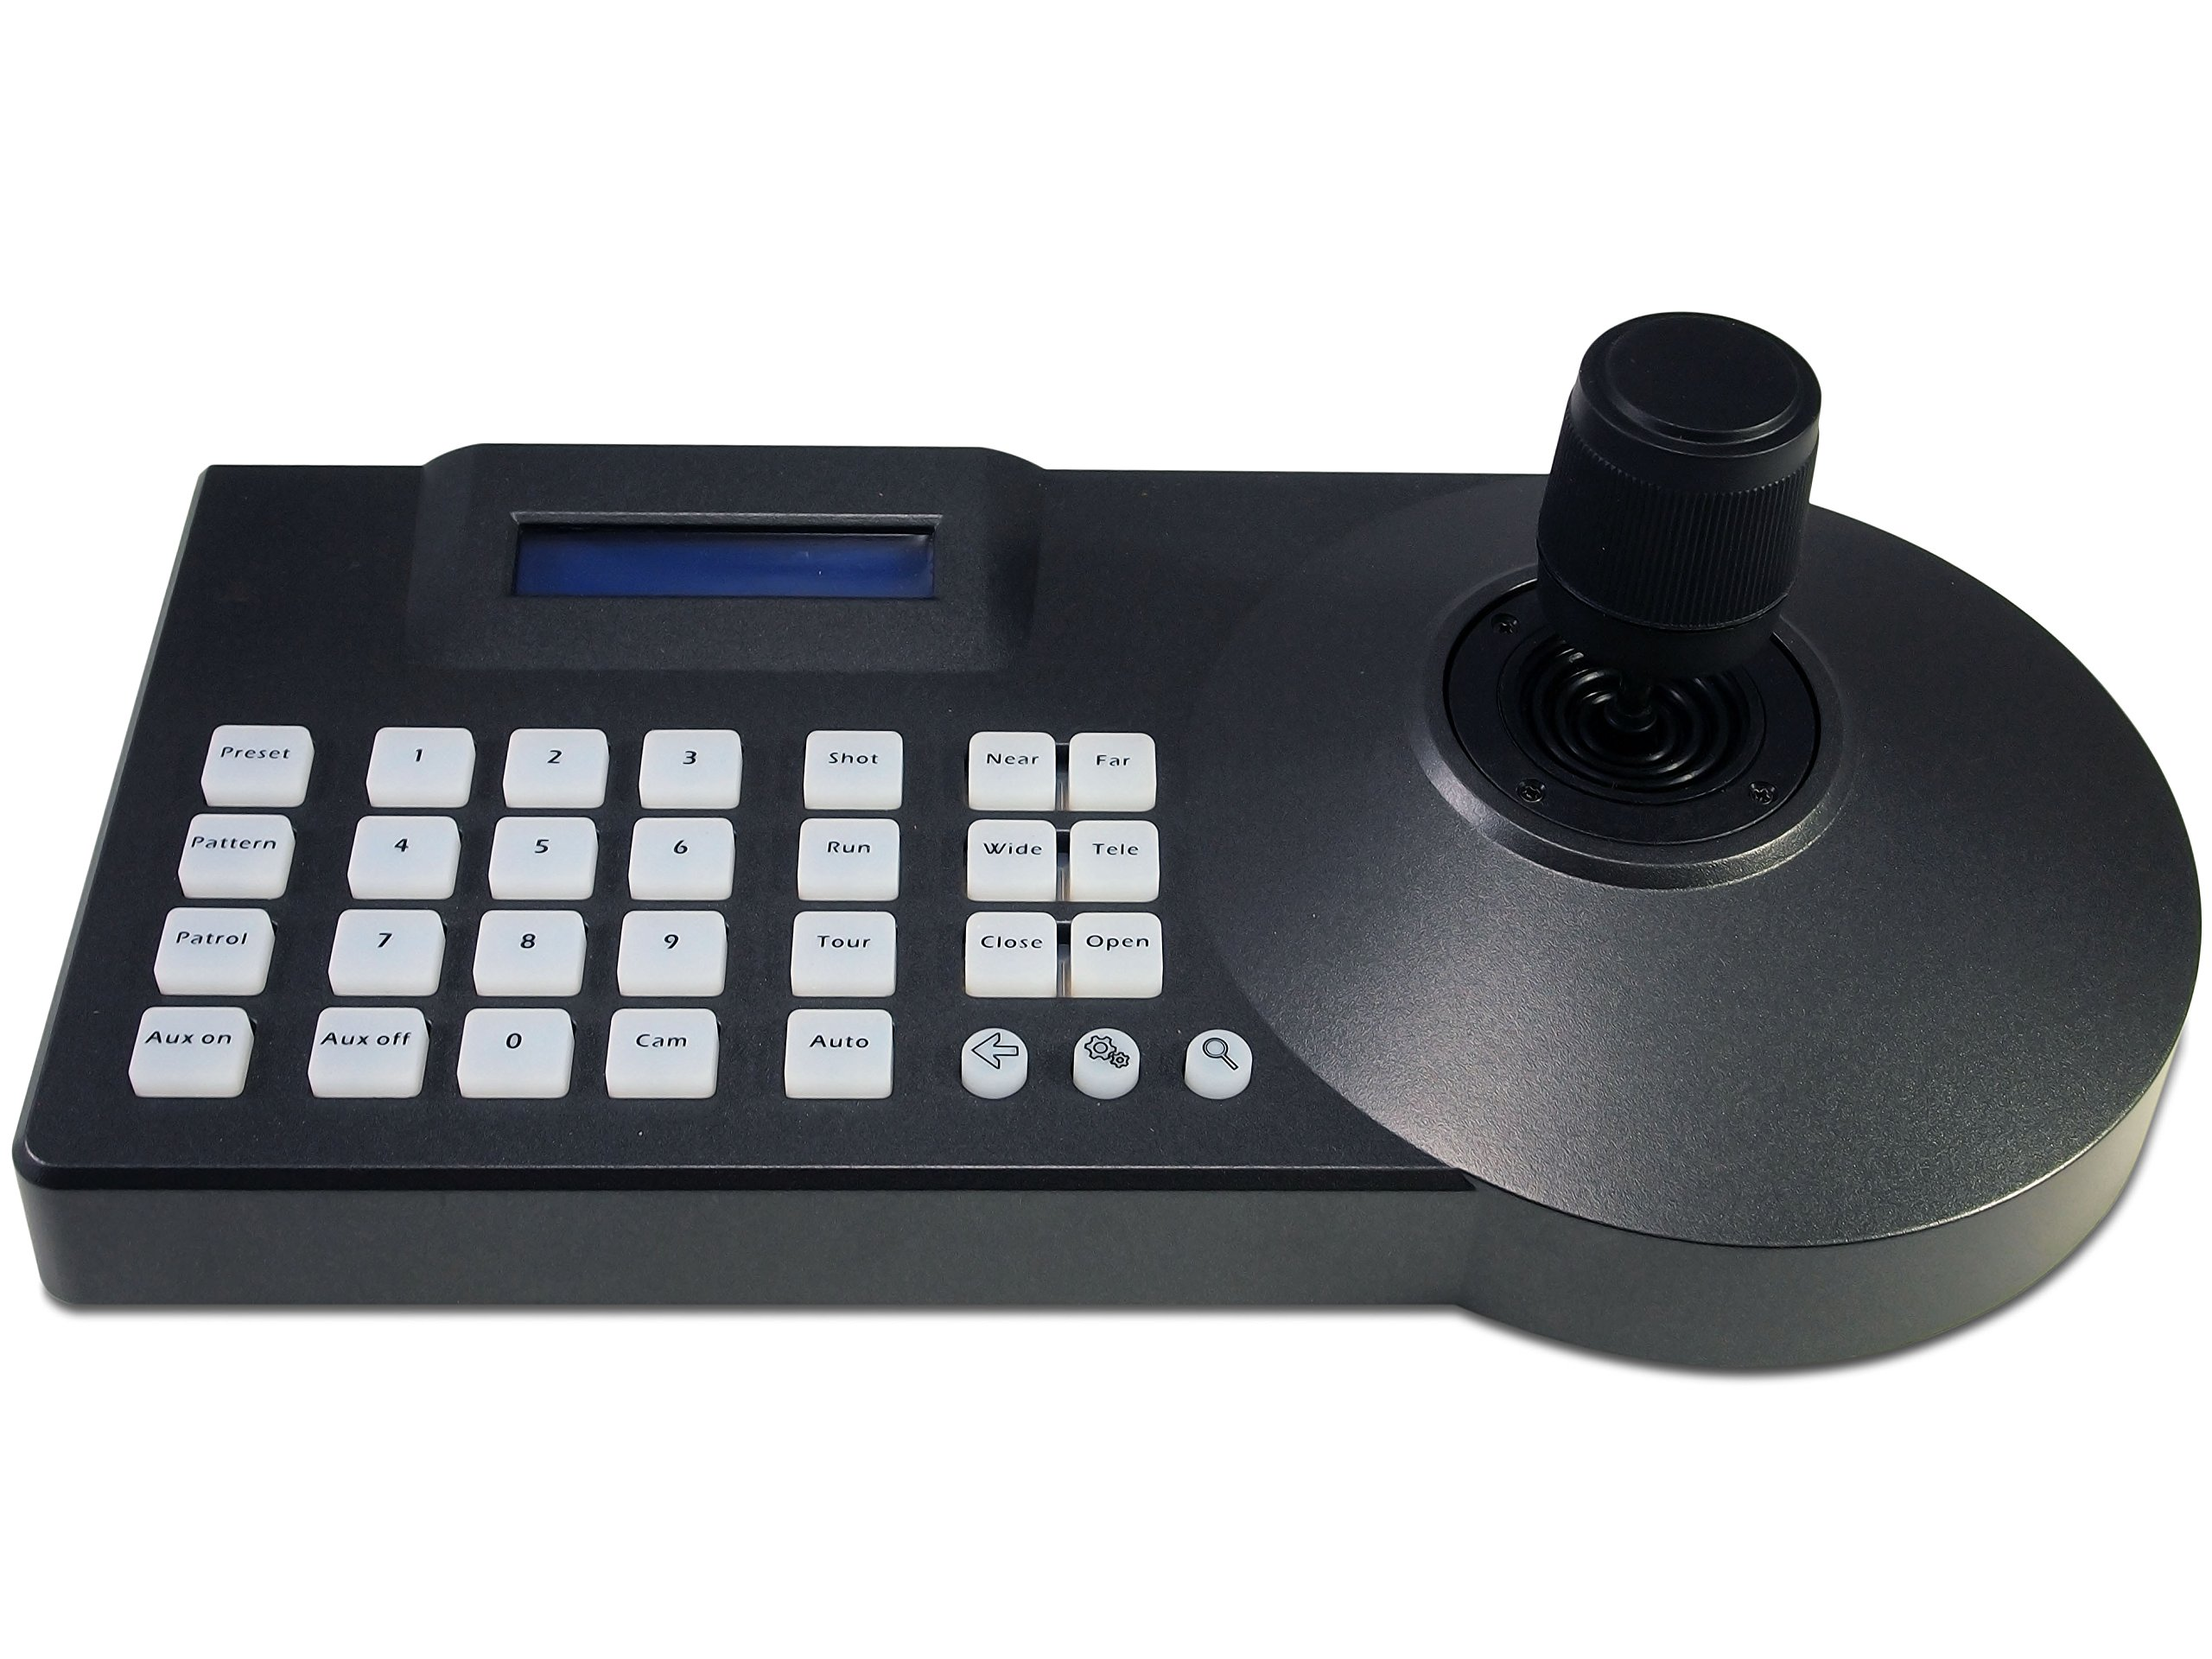 Evertech PTZ HYBRID Controller with 3D (Pan Tilt Zoom) Joystick LCD Display Keyboard Controller Connects up to 255 both Analog and Analog High Definition Speed Dome Cameras by Evertech